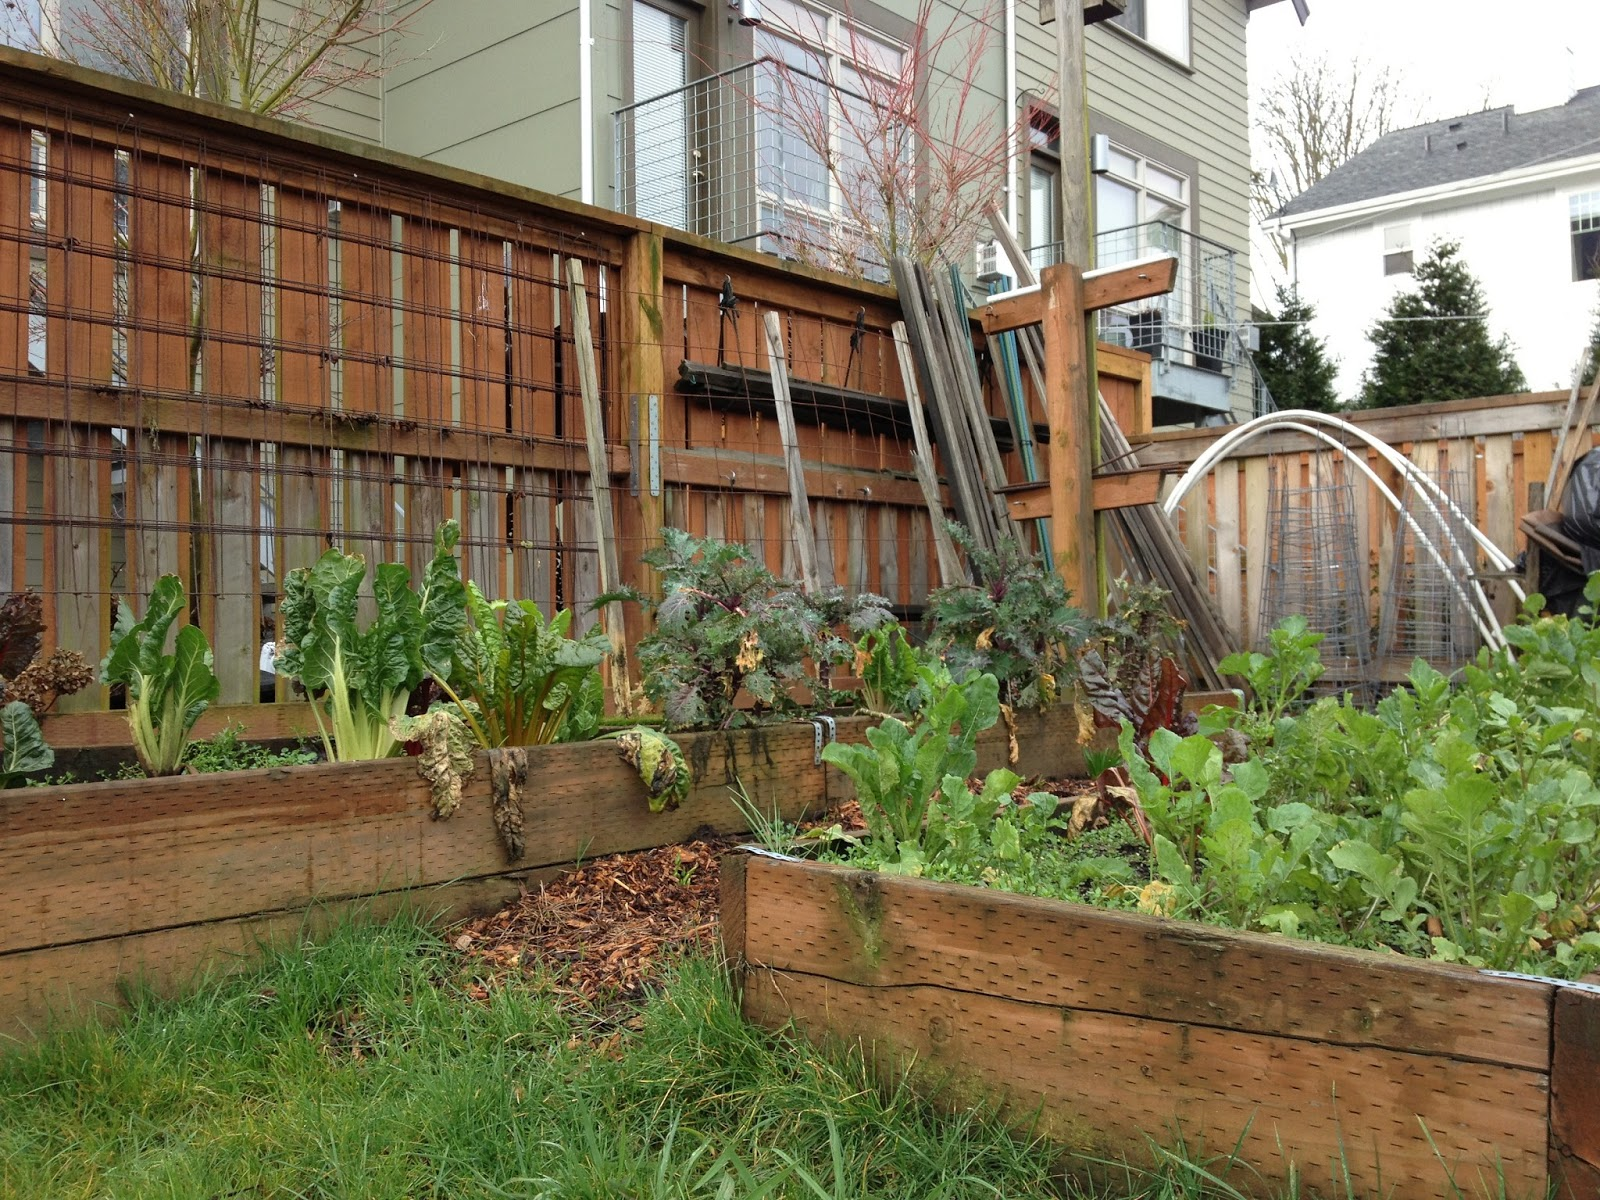 Lettuce Link: Growing and Giving: A Gratifying Experience